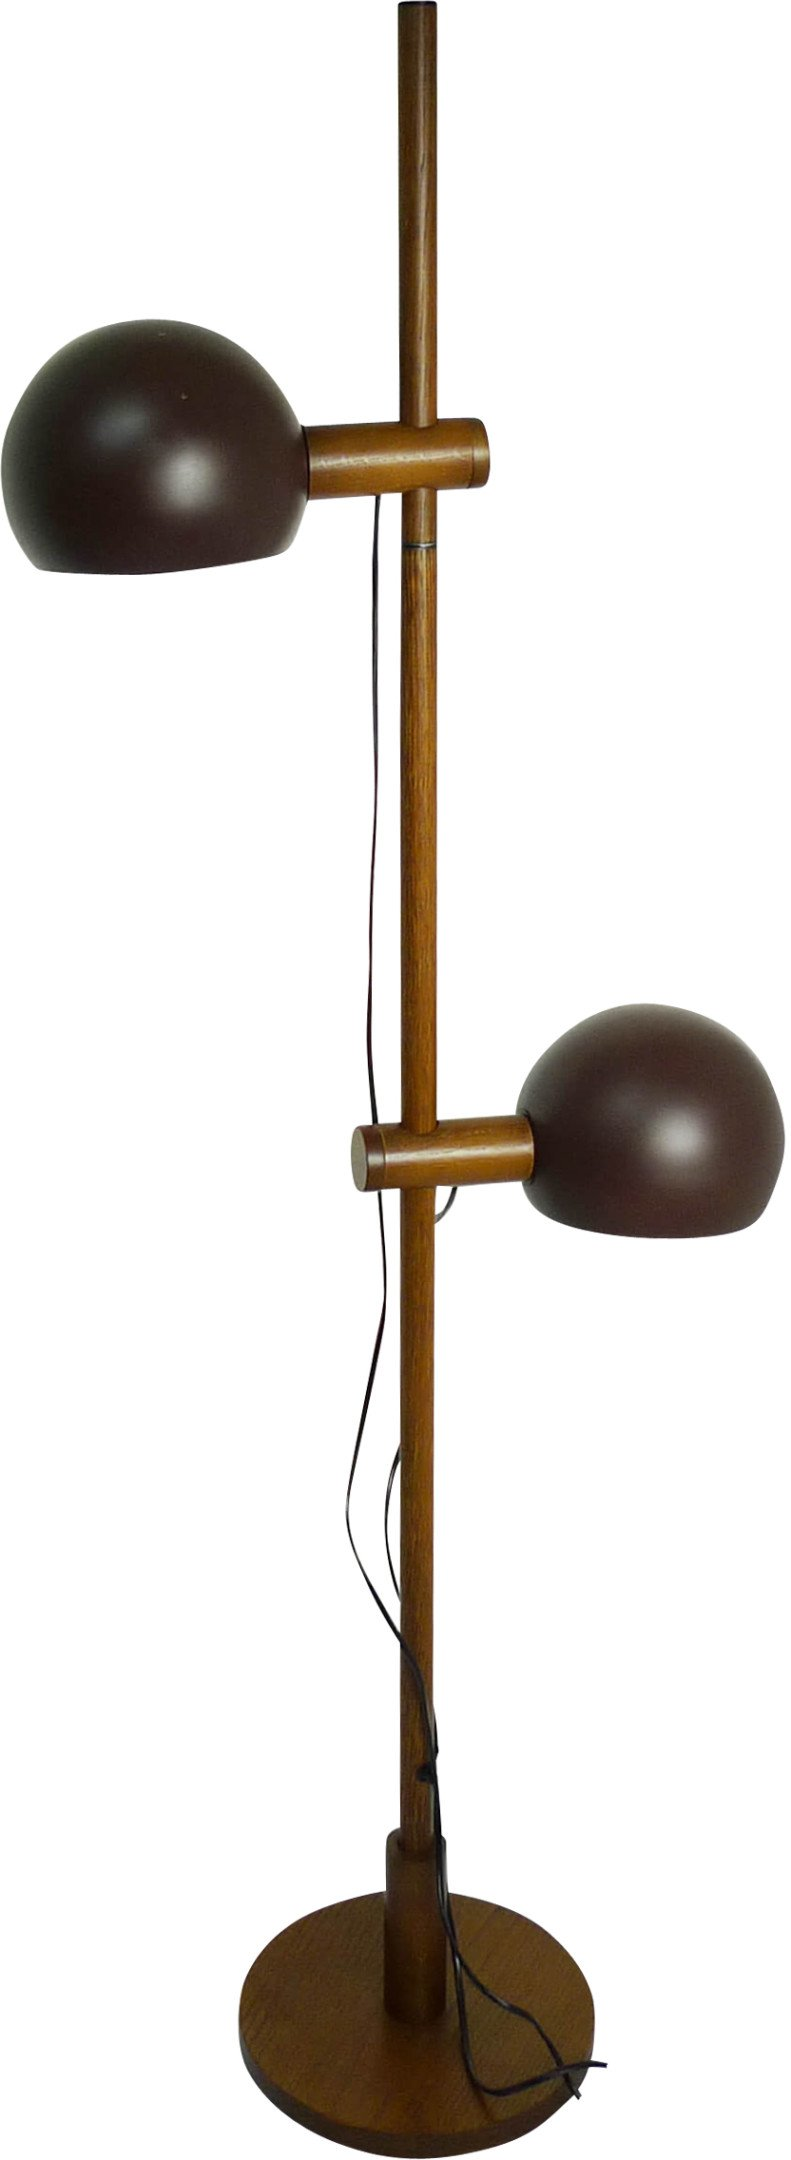 Floor Lamp, Temde, Germany, 1970s